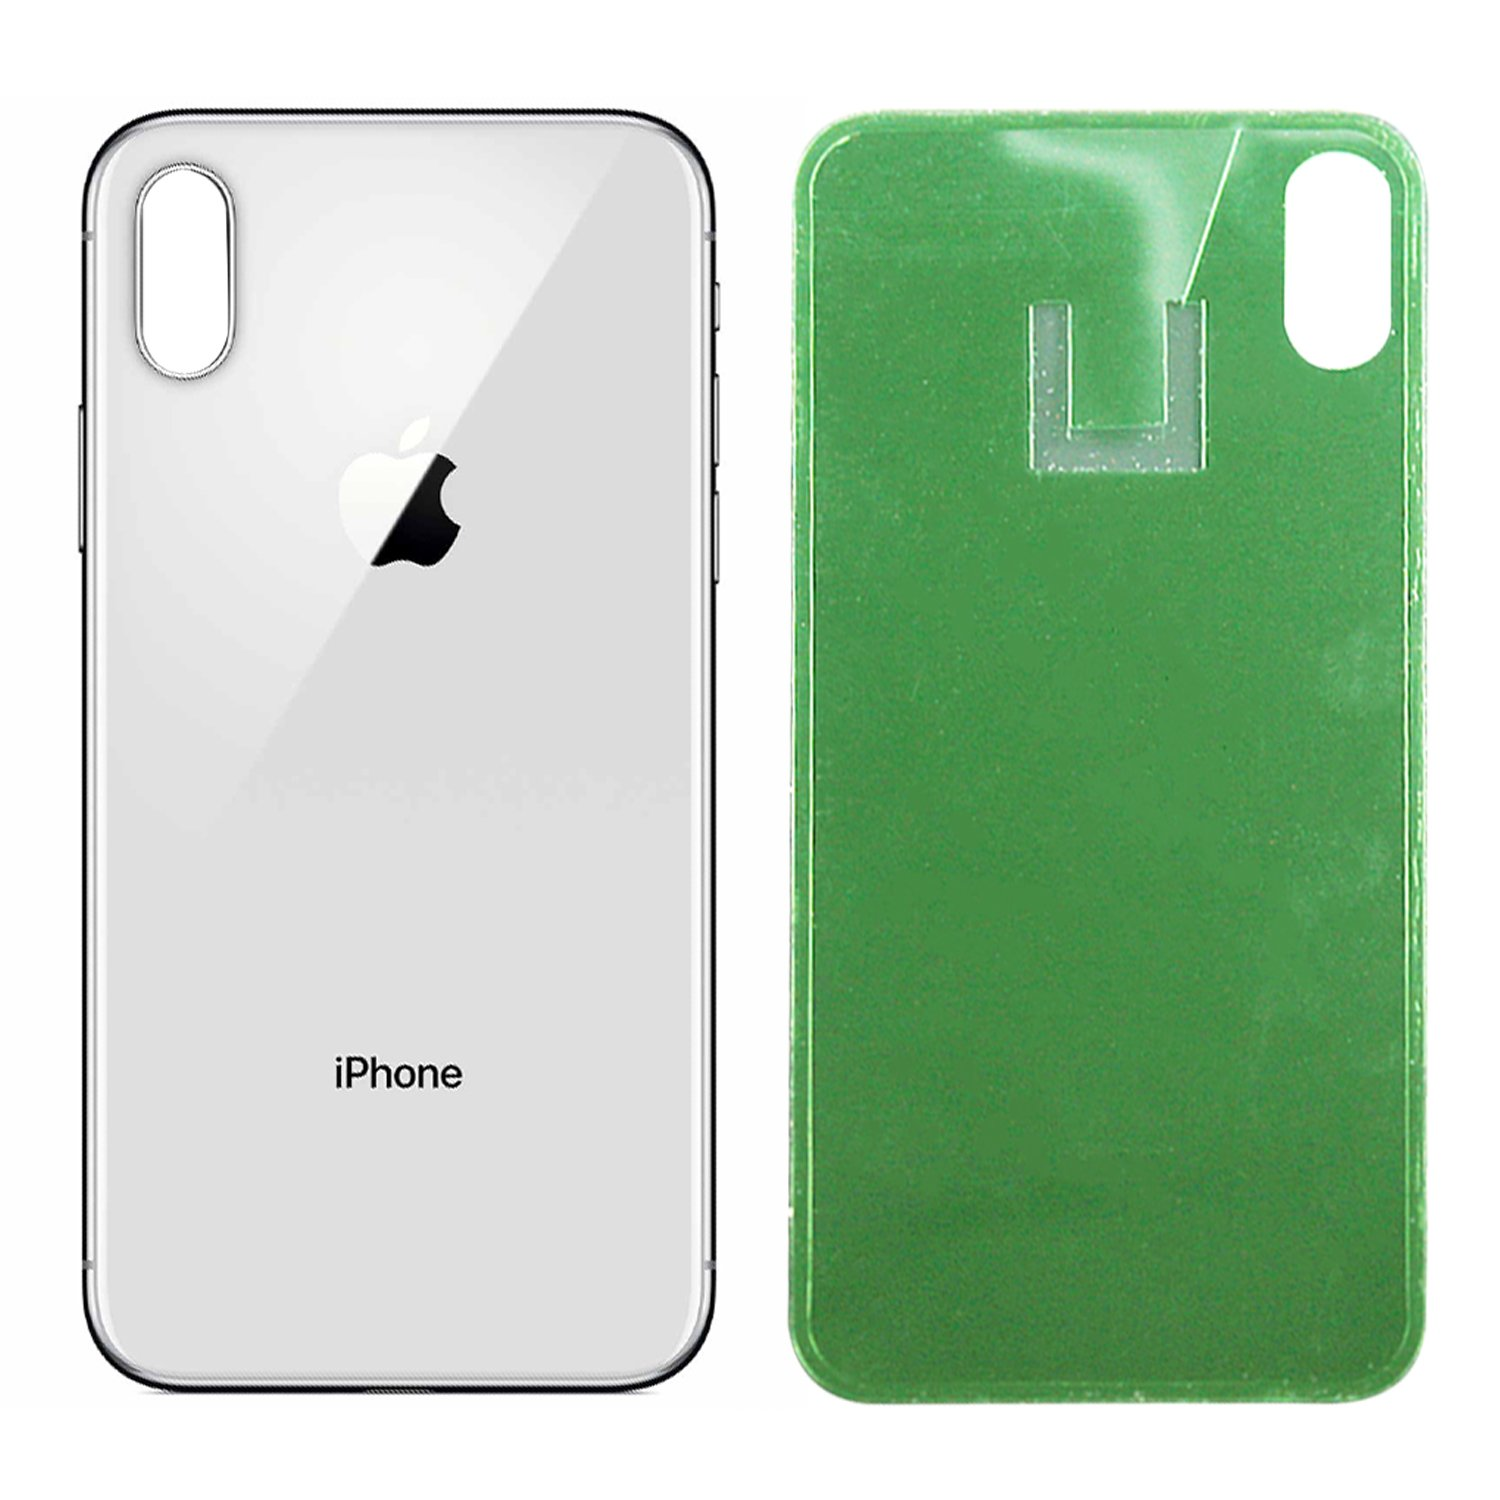 CELL4LESS Replacement for The iPhone X Back Glass Cover OEM Quality Battery Door Replacement w//Adhesive /& Removal Tool Grey